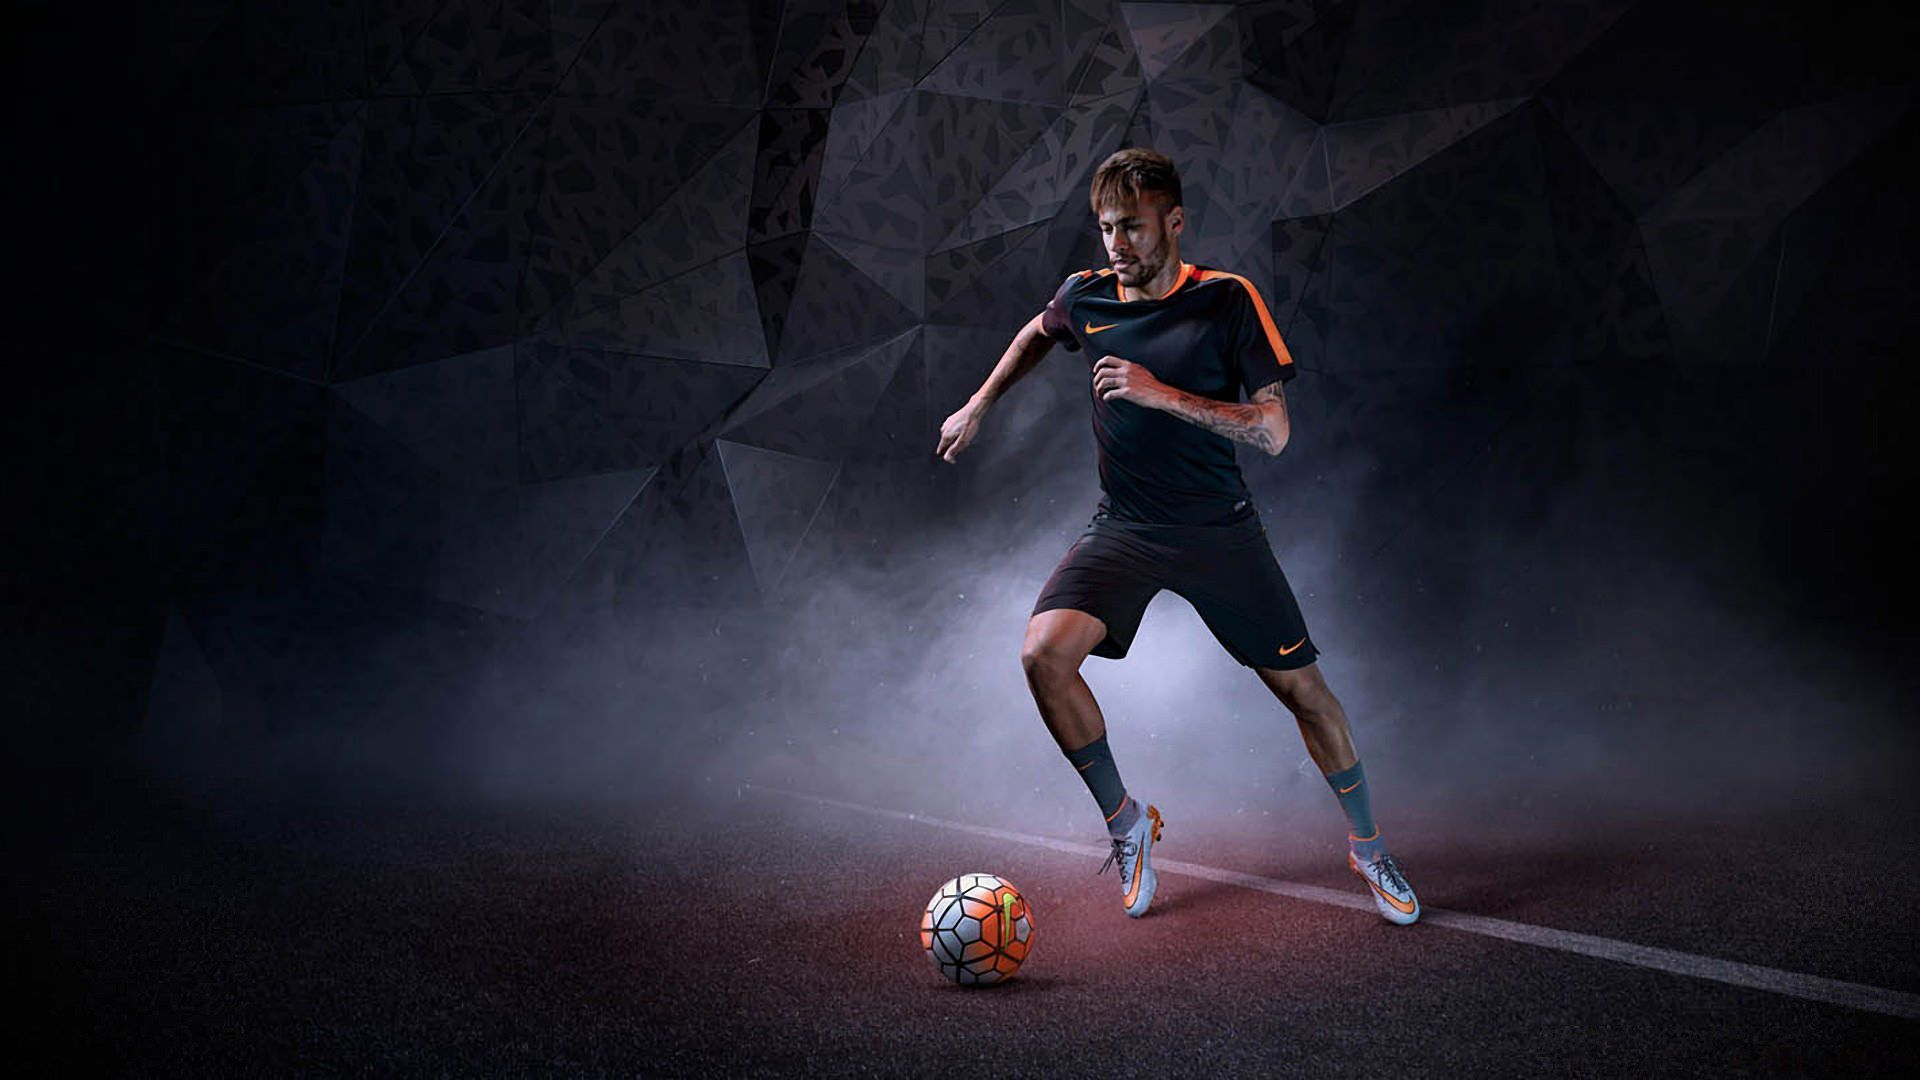 Soccer Player wallpaper and themes